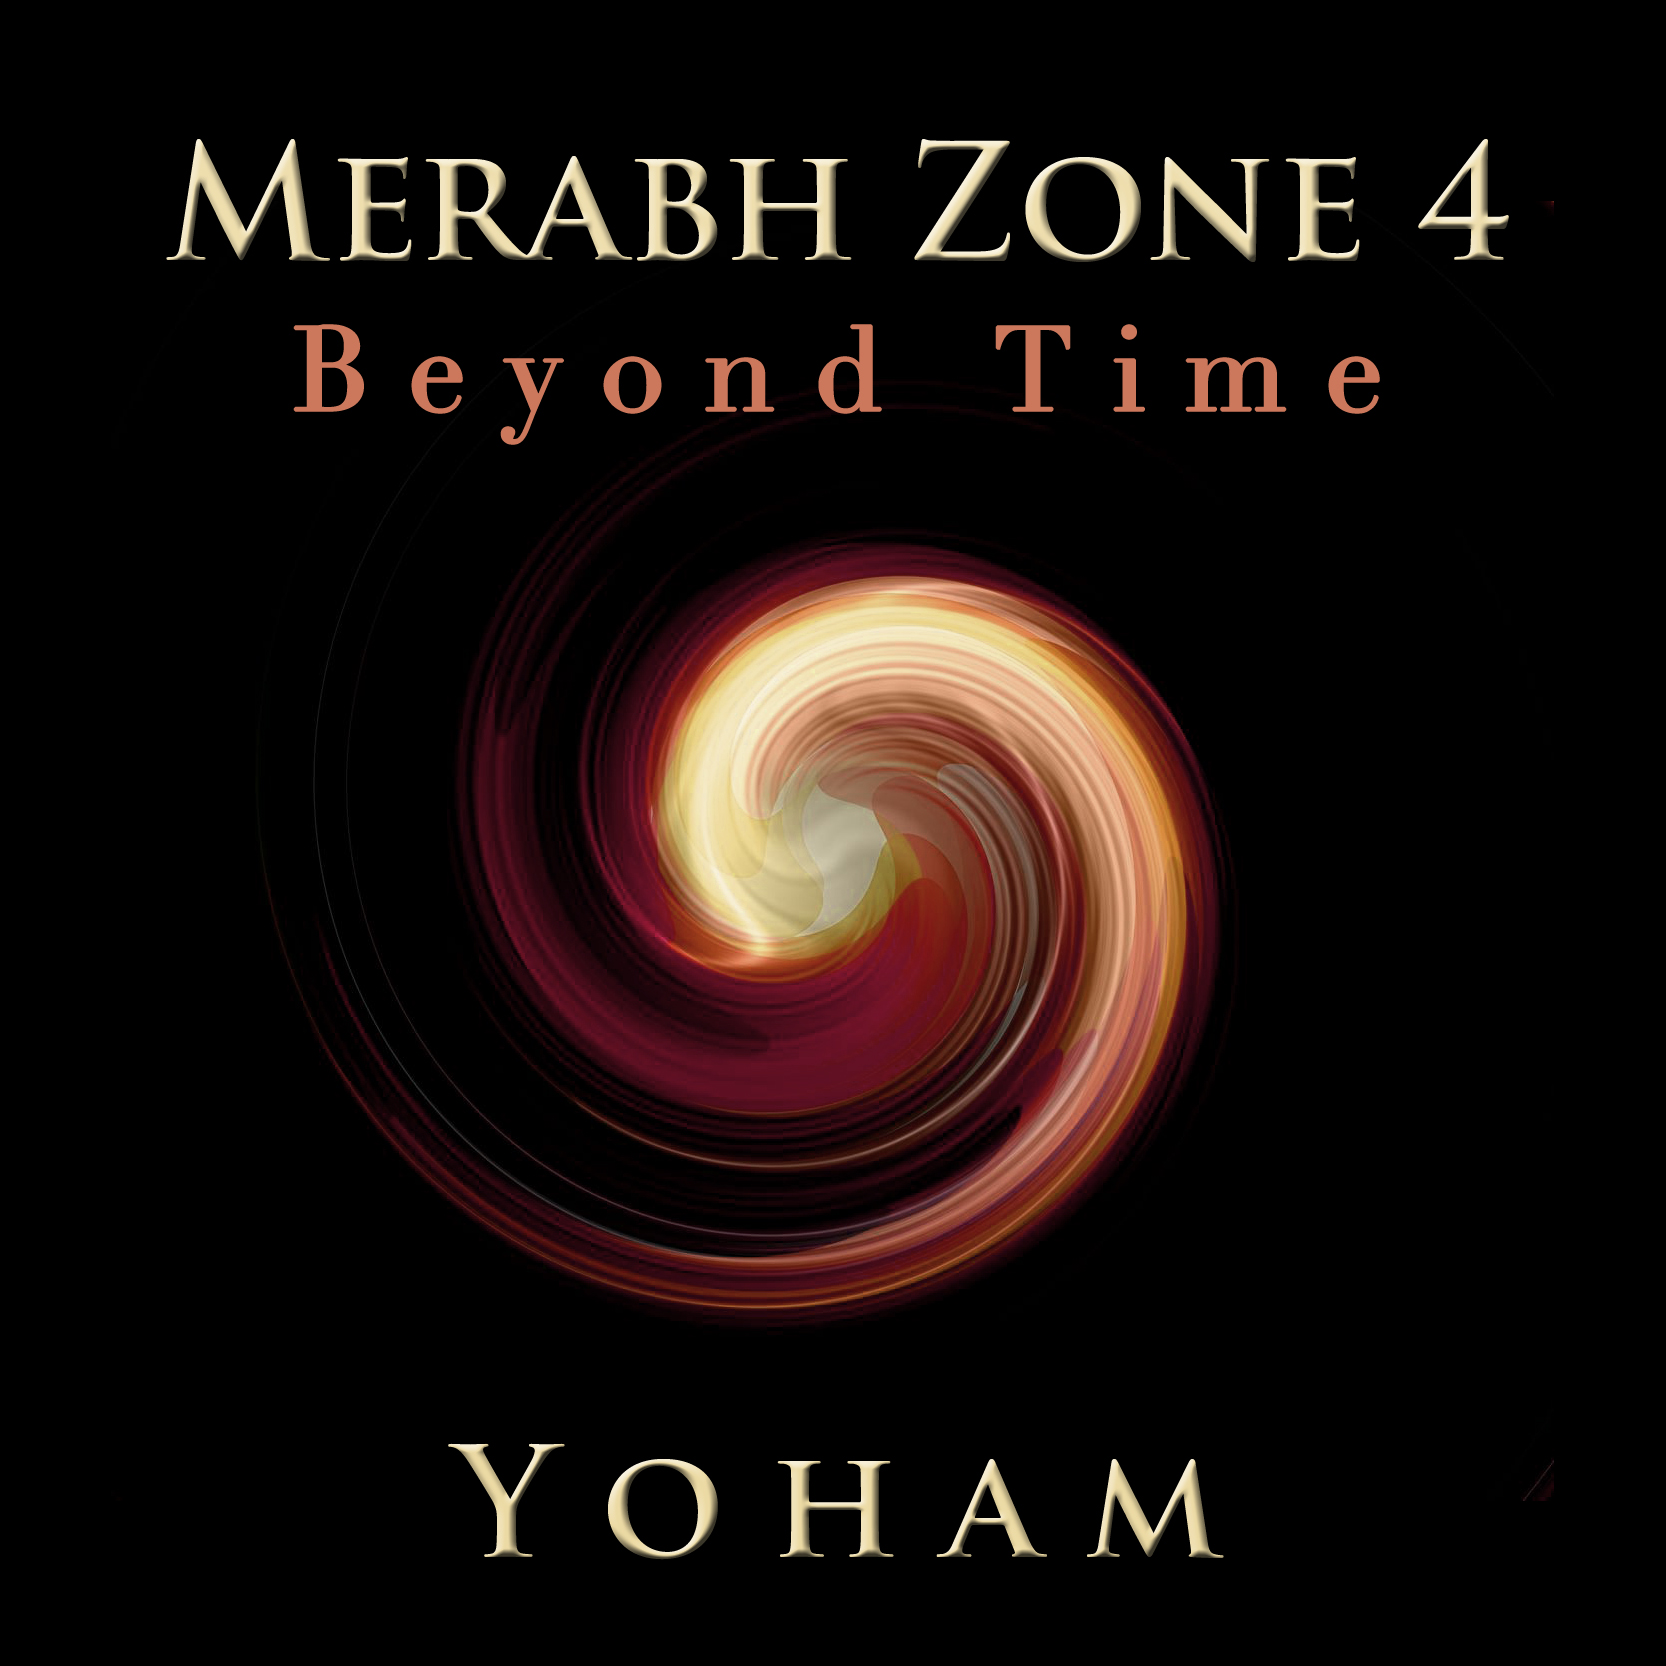 Merabh Zone 4 - Beyond Time